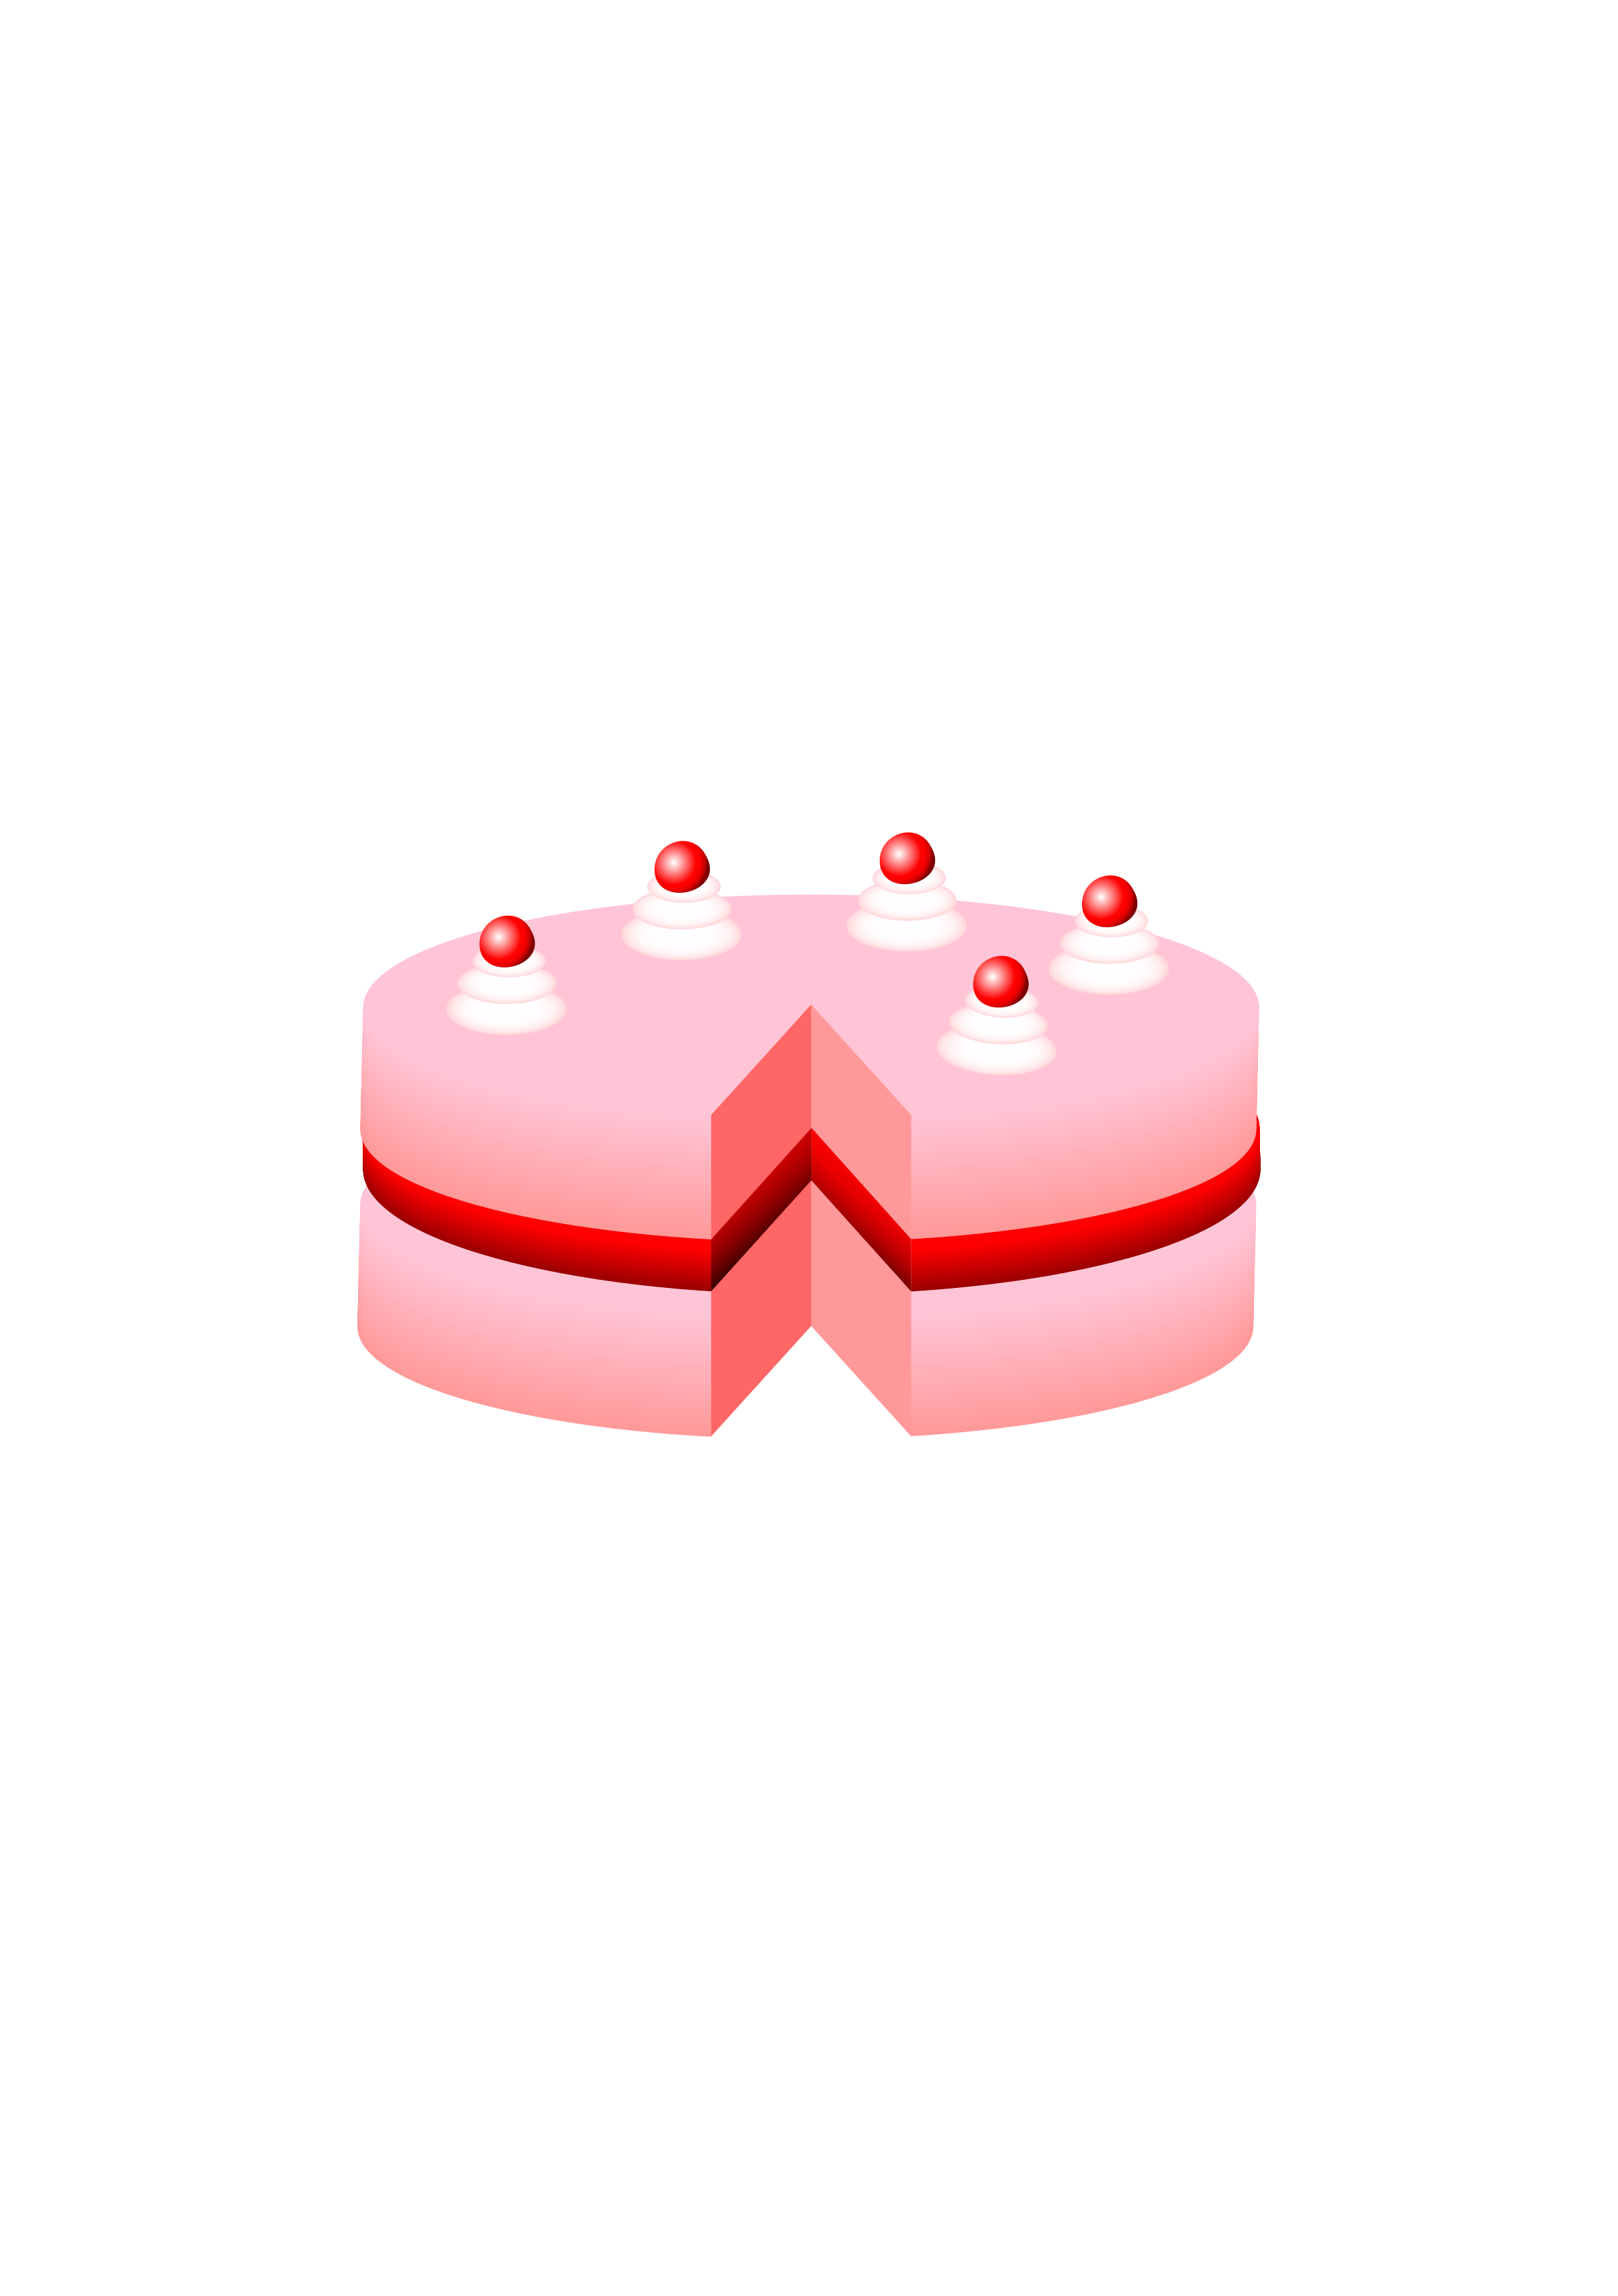 pink cake no plate by bqk